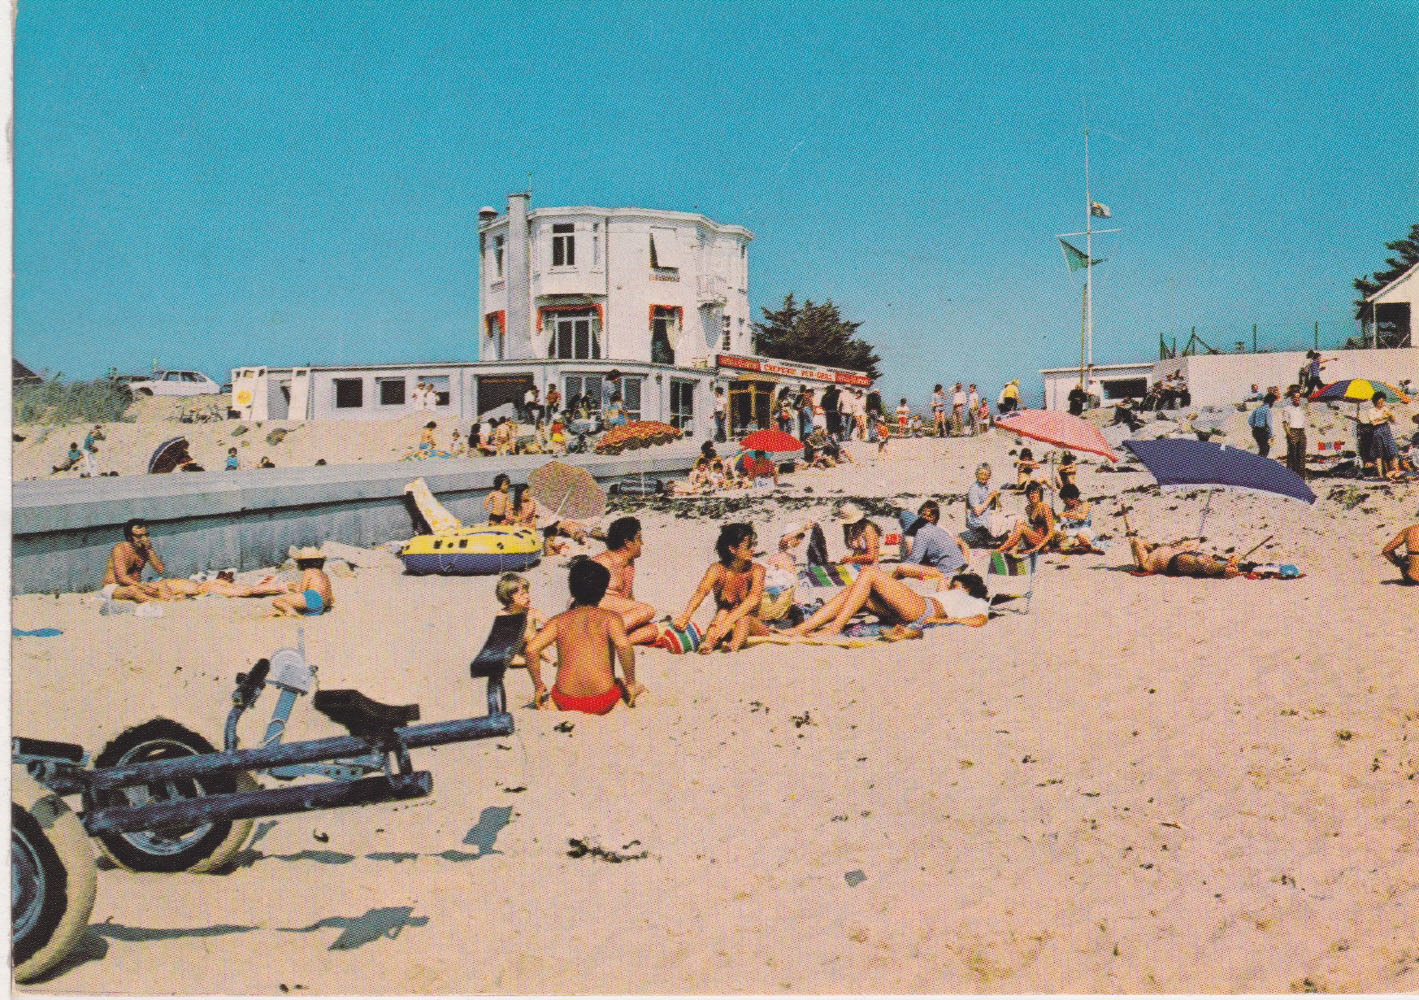 1975 St Martin Littoral Bord de mer 1 © collection Jean Claude (...)